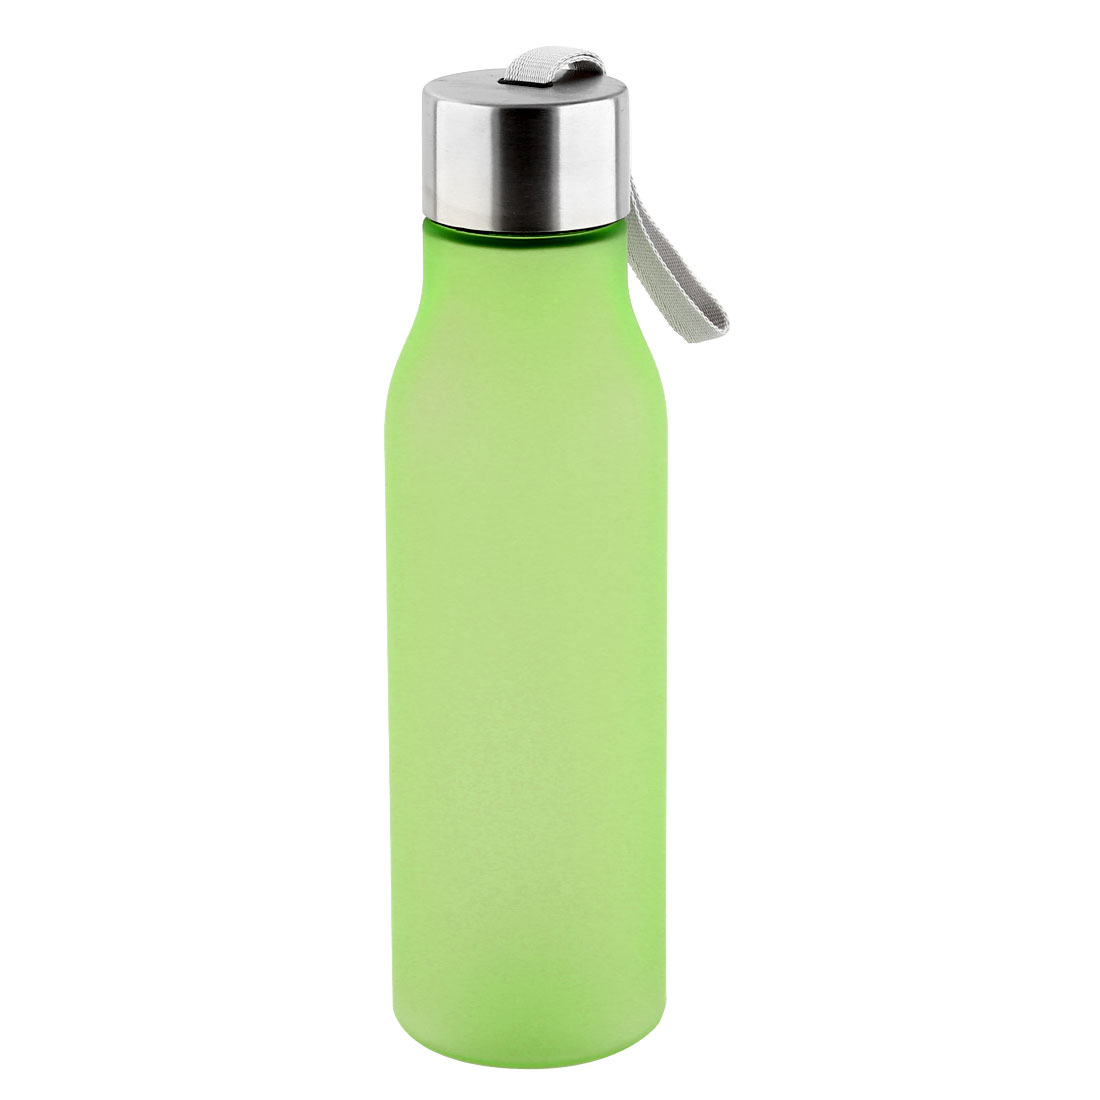 Outdoor Plastic Frosted Water Bottle Portable Fruit Juice Mug Running Cycling Cup Camping Hiking Kettle Green 570ml